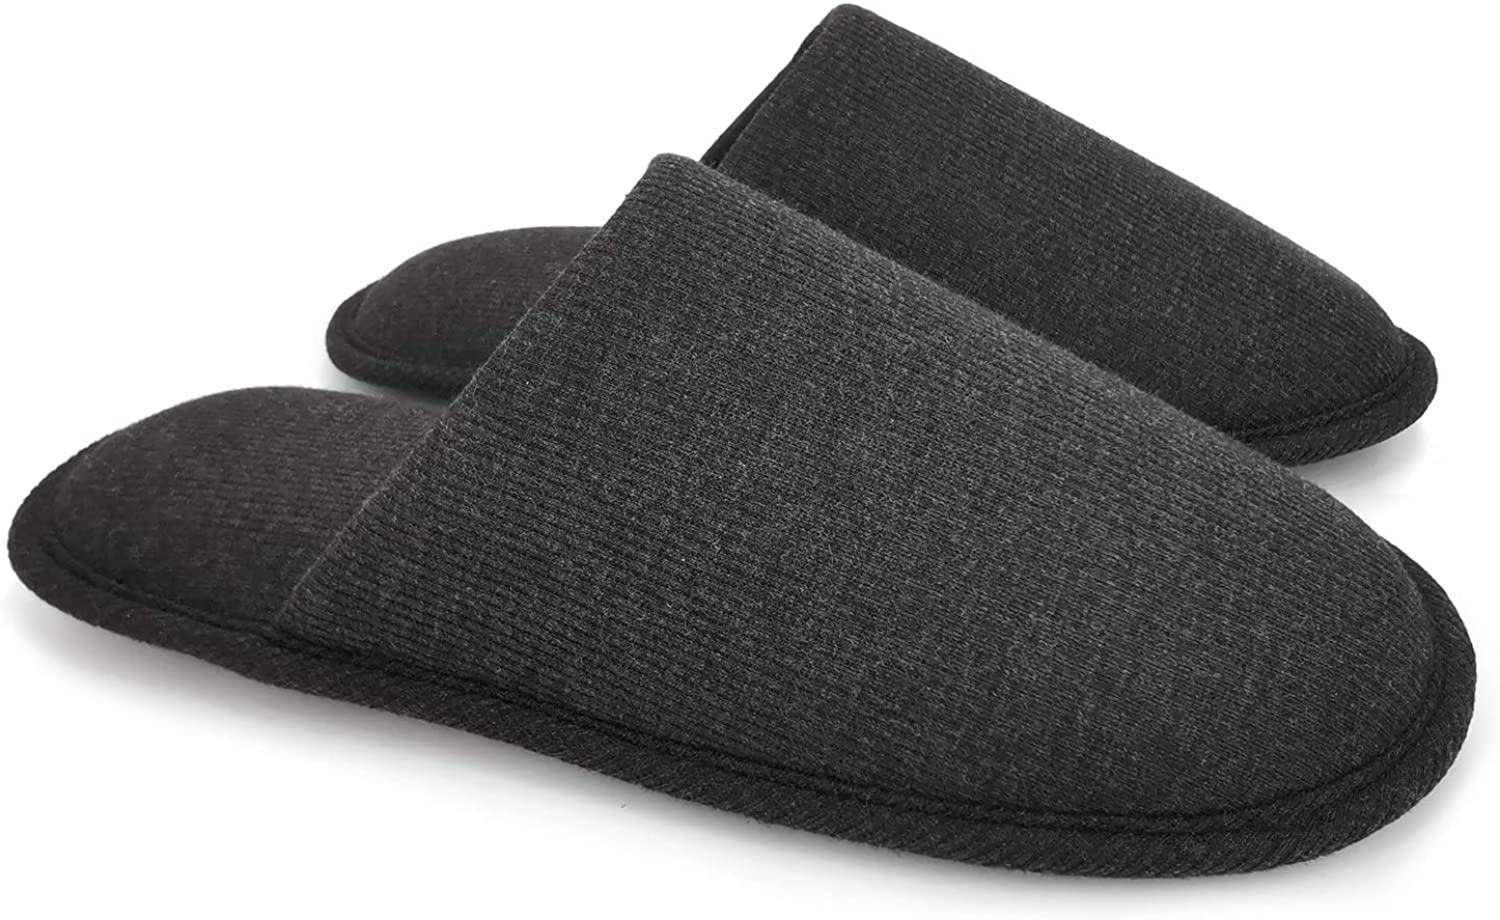 ofoot Mens Indoor Slippers Memory Foam Teddy Wool-Like Fluffy Fuzzy Soft Cozy Warm Winter Non Slip Bedroom House Shoes